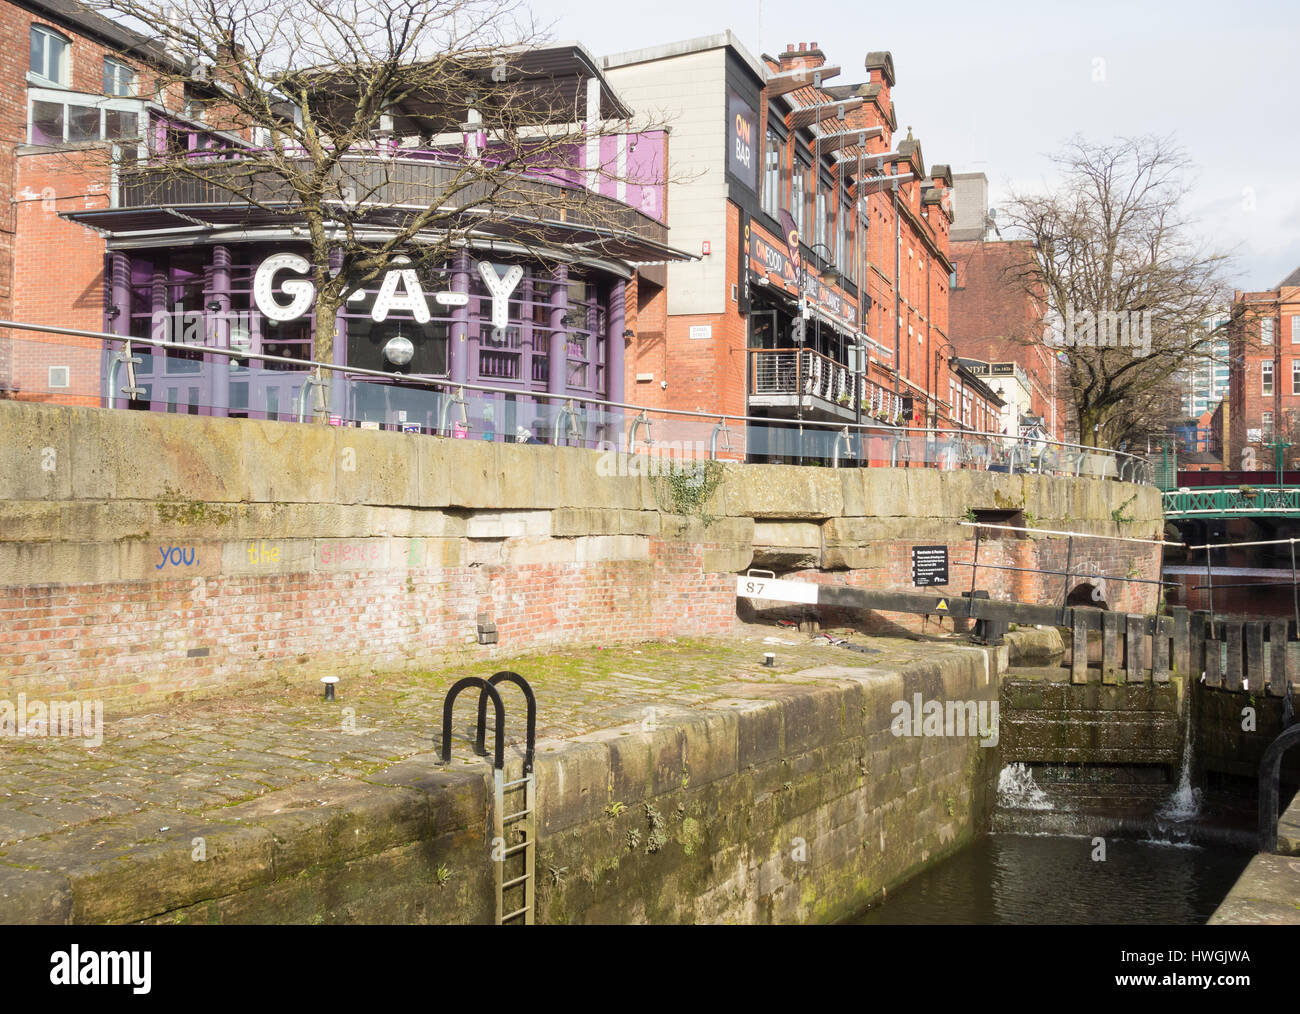 Canal street in Manchester`s Gay village. Manchester, England. UK - Stock Image